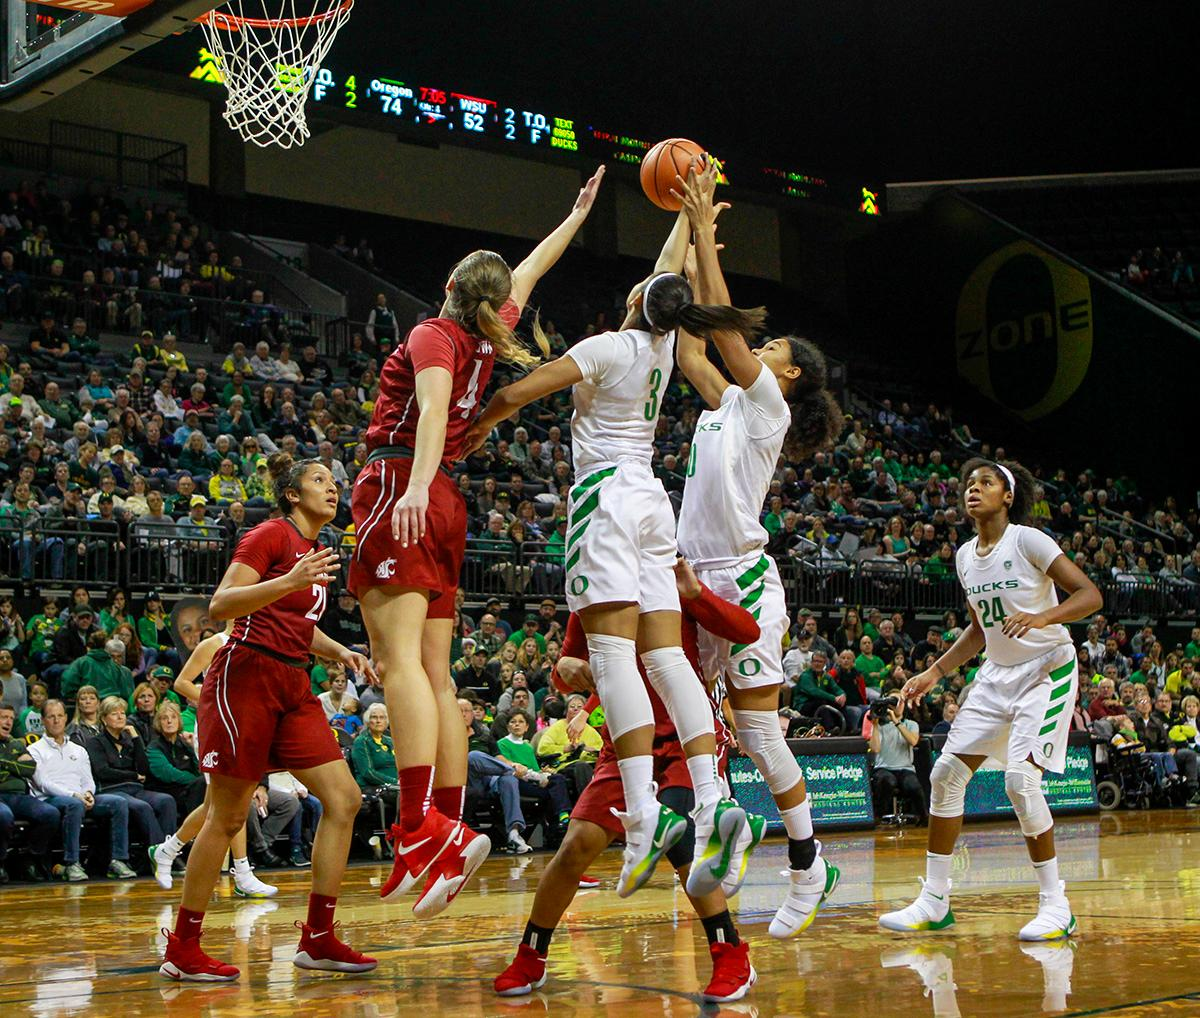 The Oregon Ducks and Washington State University Cougars go up for control of a rebound. In their first conference basketball game of the season, the Oregon Women Ducks defeated the Washington State Cougars 89-56 in Matt Knight Arena Saturday afternoon. Oregon's Ruthy Hebard ran up 25 points with 10 rebounds. Sabrina Ionescu shot 25 points with five three-pointers and three rebounds. Lexi Bando added 18 points, with four three-pointers and pulled down three rebounds. Satou Sabally ended the game with 14 points with one three-pointer and two rebounds. The Ducks are now 12-2 overall with 1-0 in conference and the Cougars stand at 7-6 overall and 0-1 in conference play. The Oregon Women Ducks next play the University of Washington Huskies at 1:00 pm on Sunday. Photo by Rhianna Gelhart, Oregon News Lab